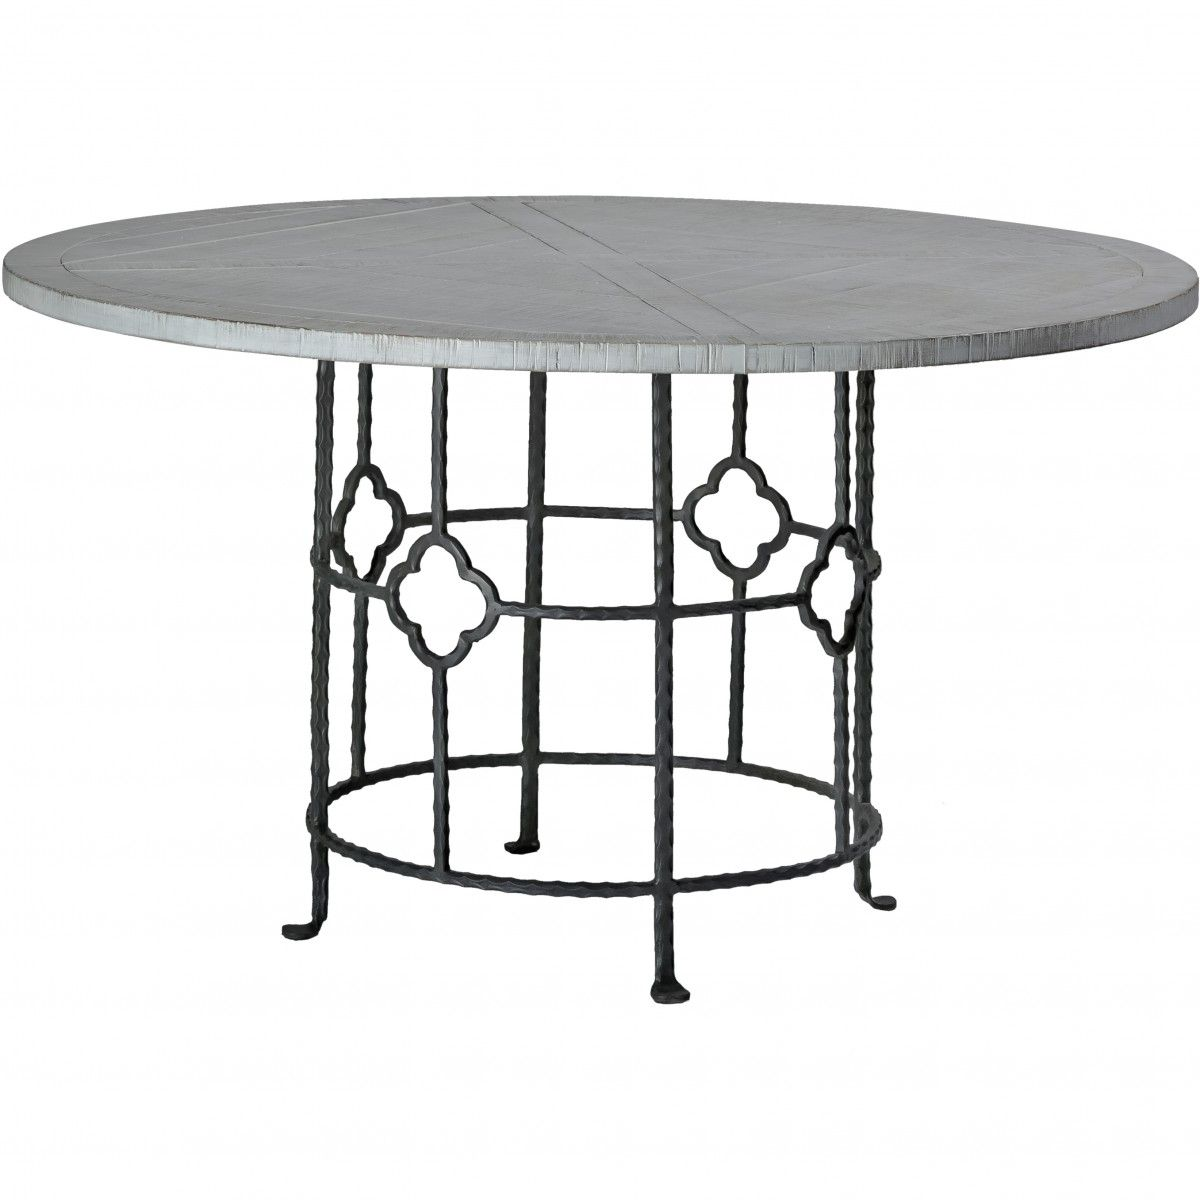 Gabby King Dining Table Dining Tables Dining Room Furniture